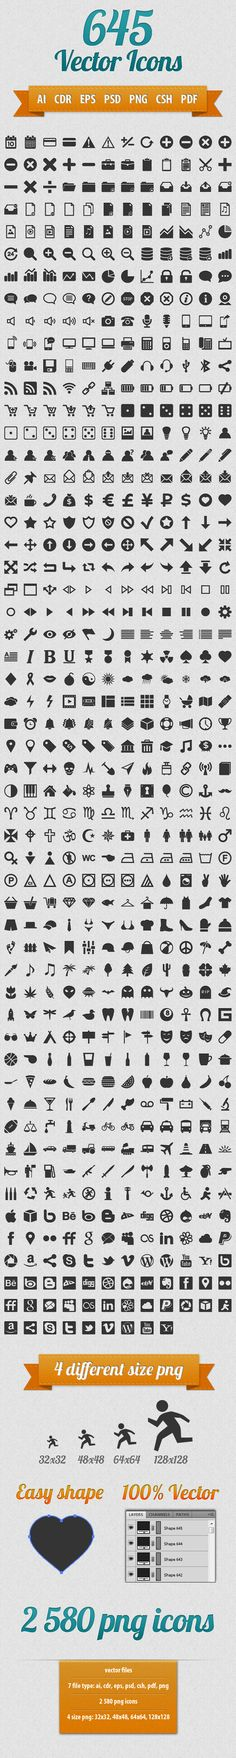 645 Vector Icons Pack